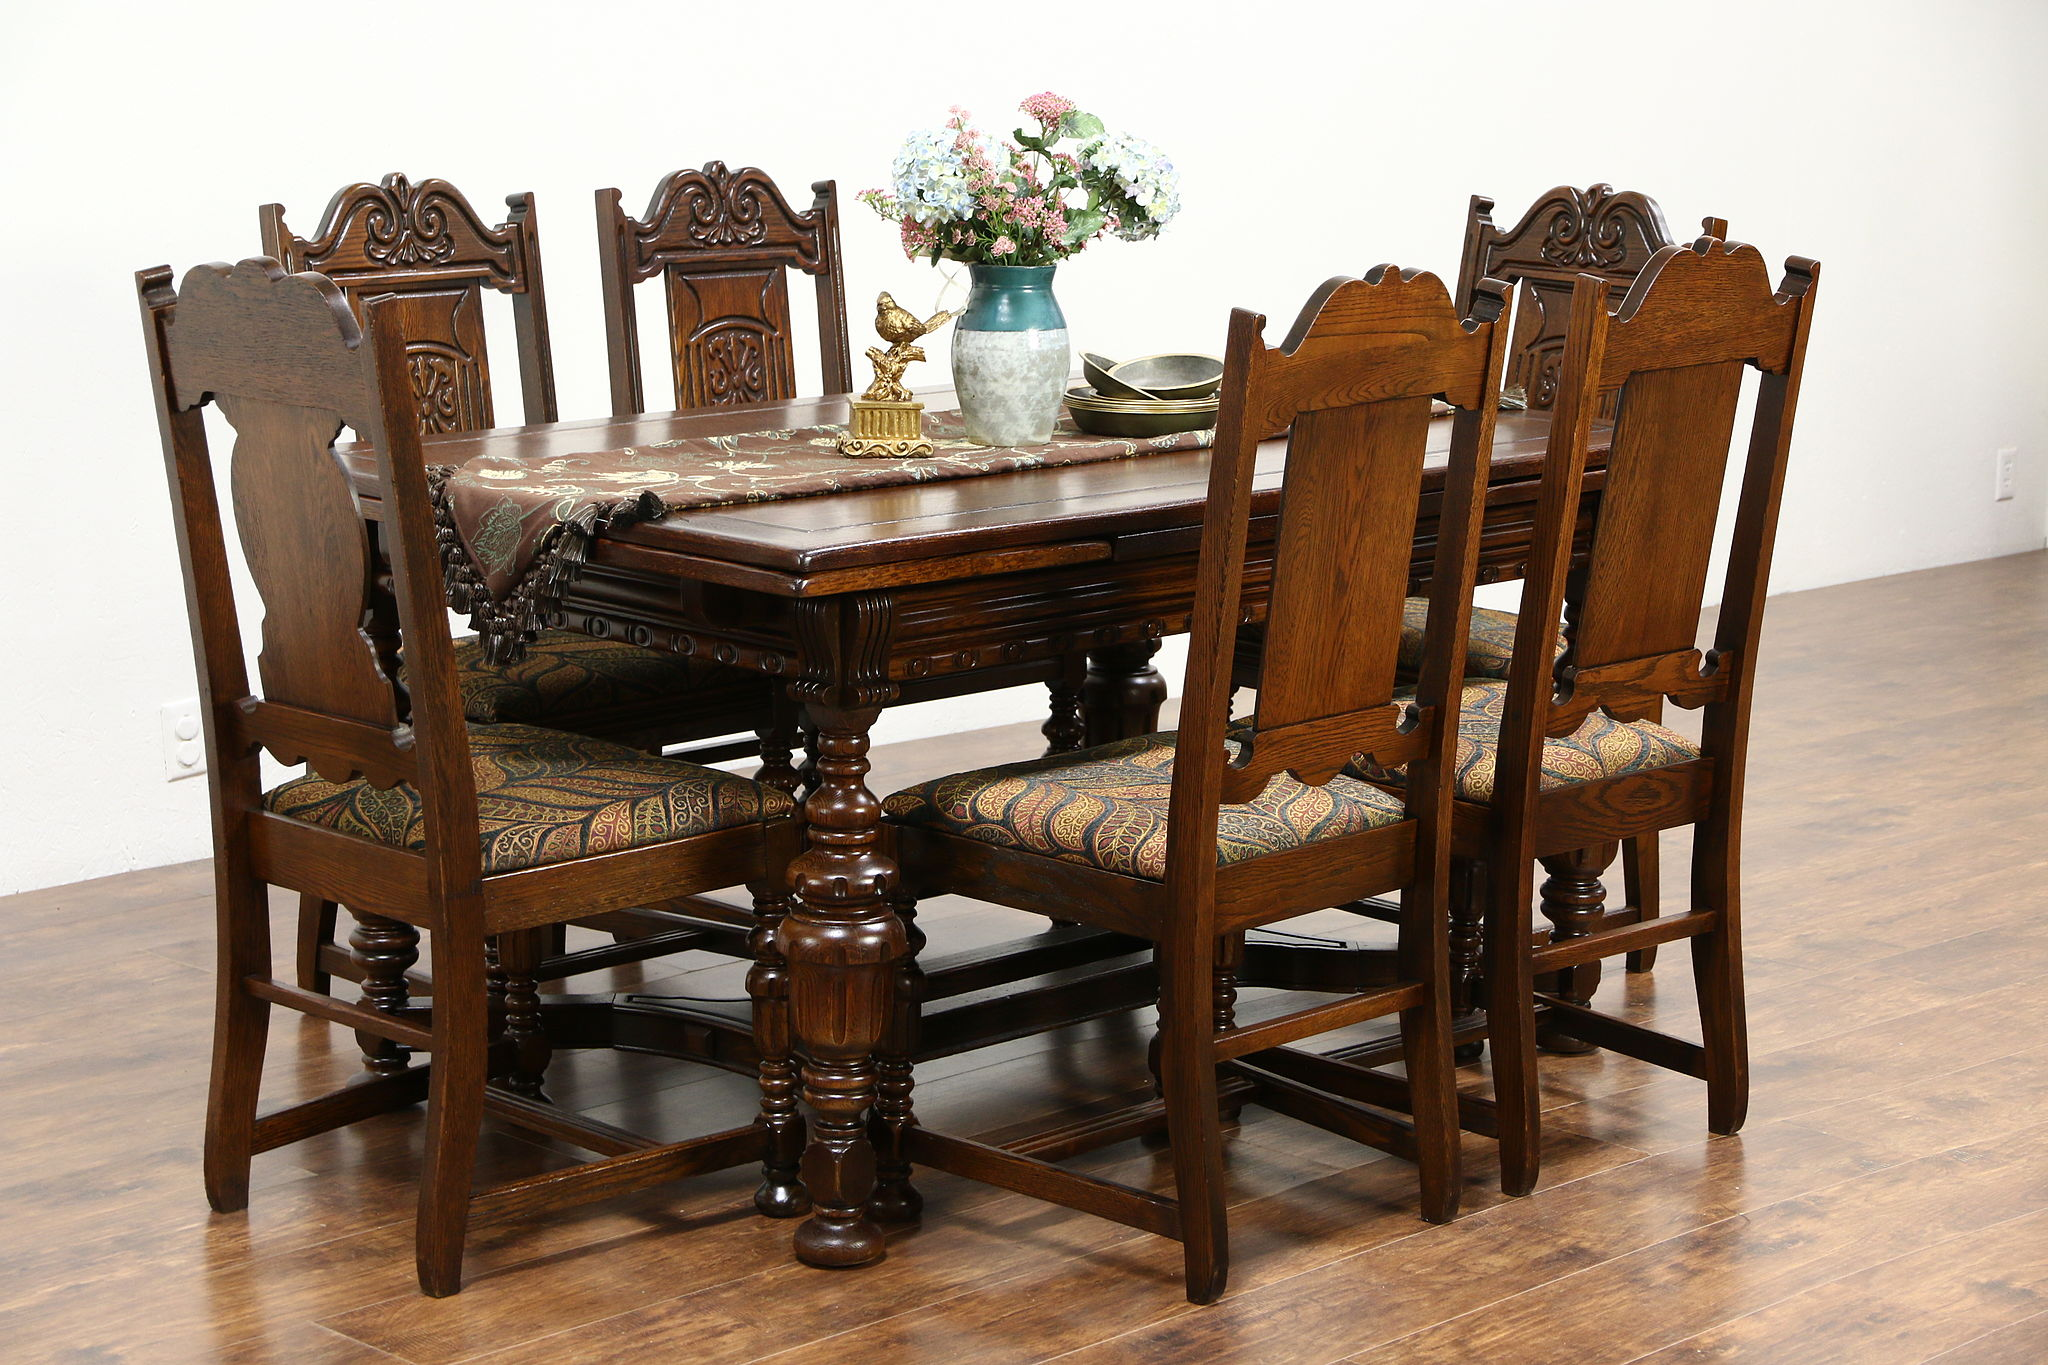 Sold tudor 1925 antique carved oak dining set table 6 for Antique dining room furniture